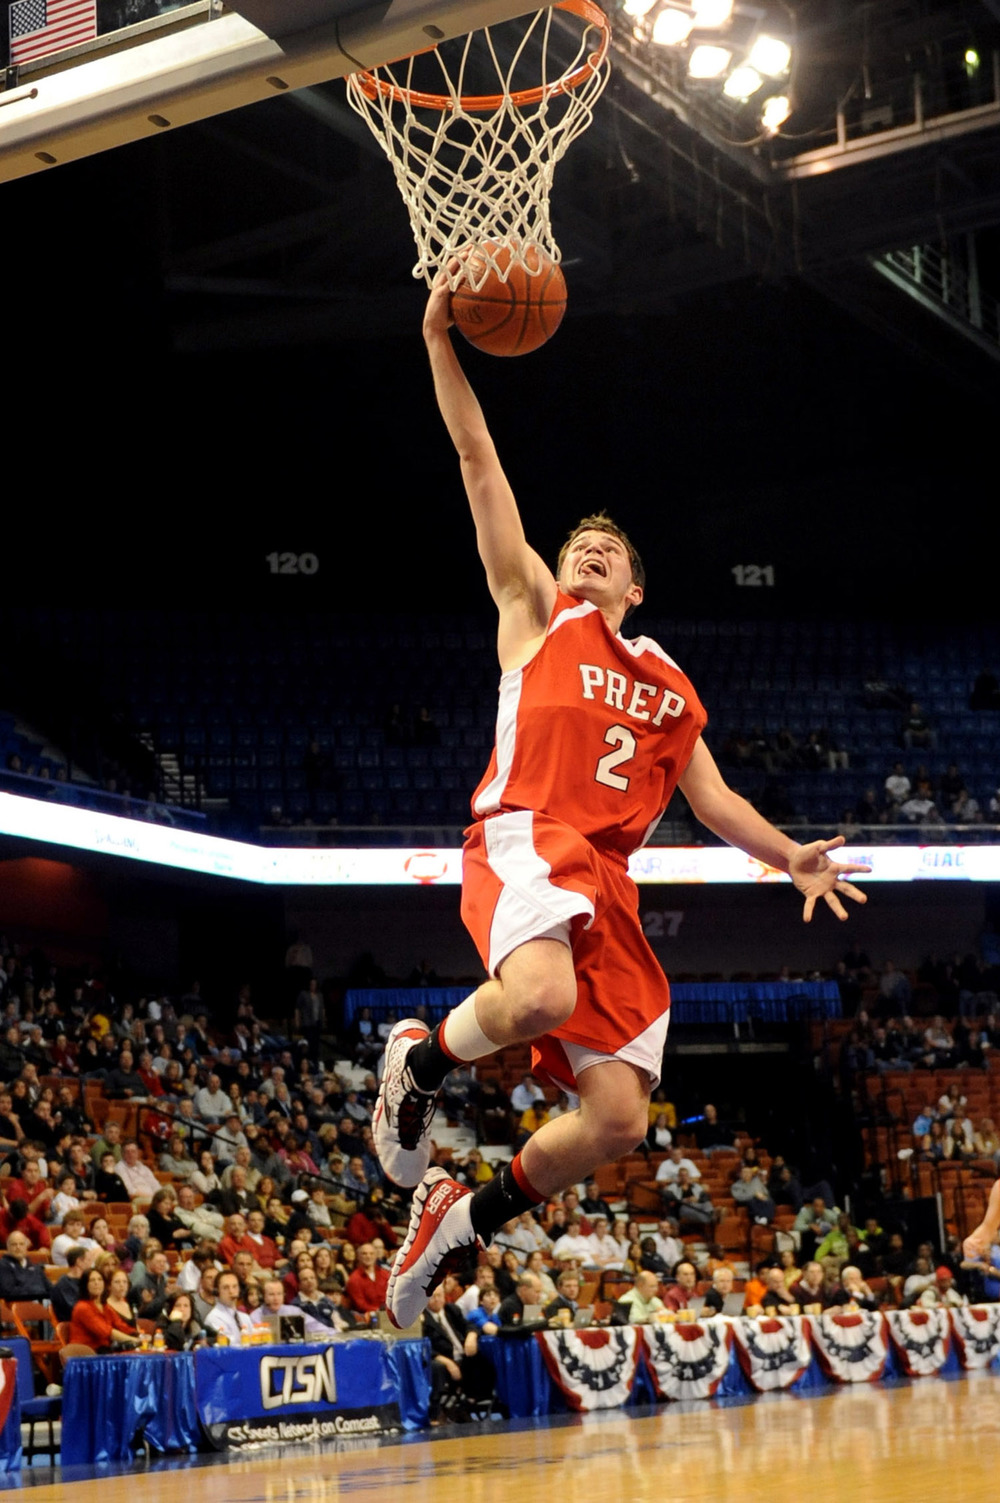 Fairfield Prep's Robbie Bier takes a shot during Saturday's Class LL State Final game at Mohegan Sun Arena on March 19, 2011.